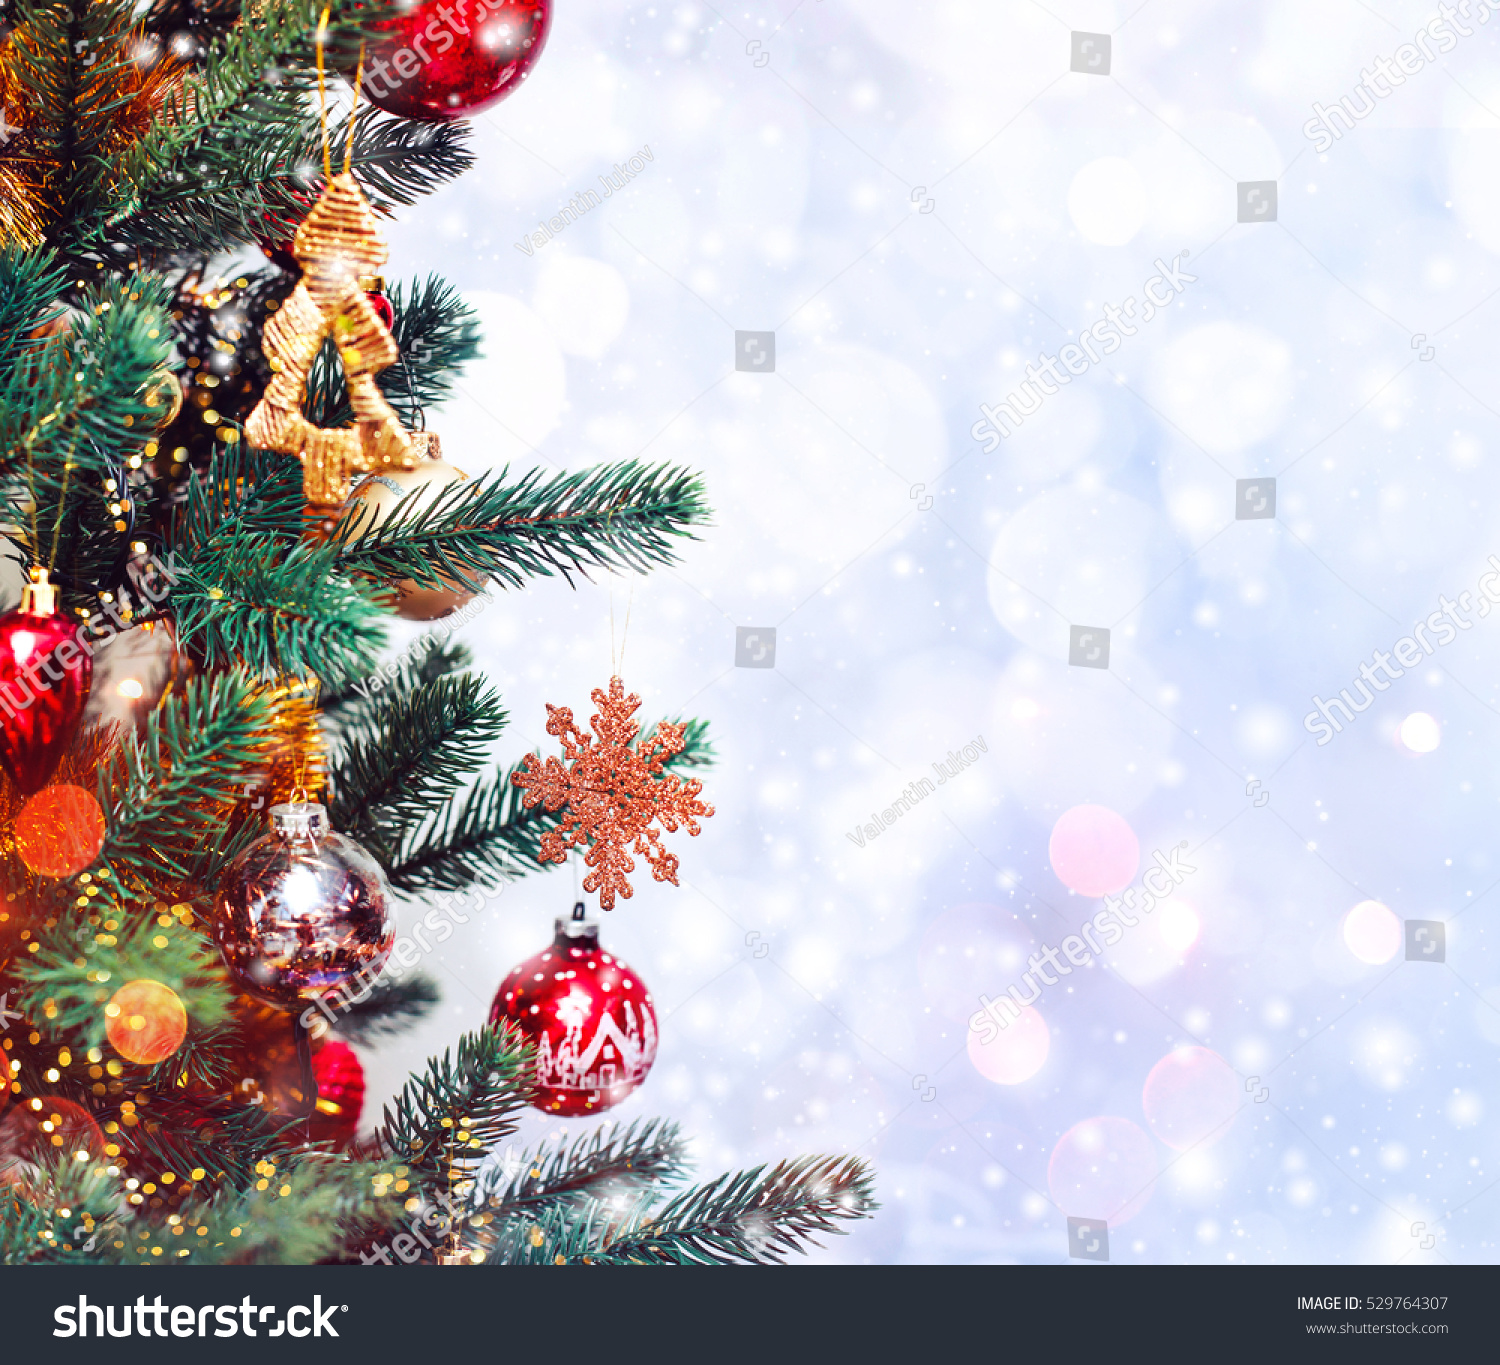 christmas tree background and christmas decorations with snow blurred sparking glowing happy